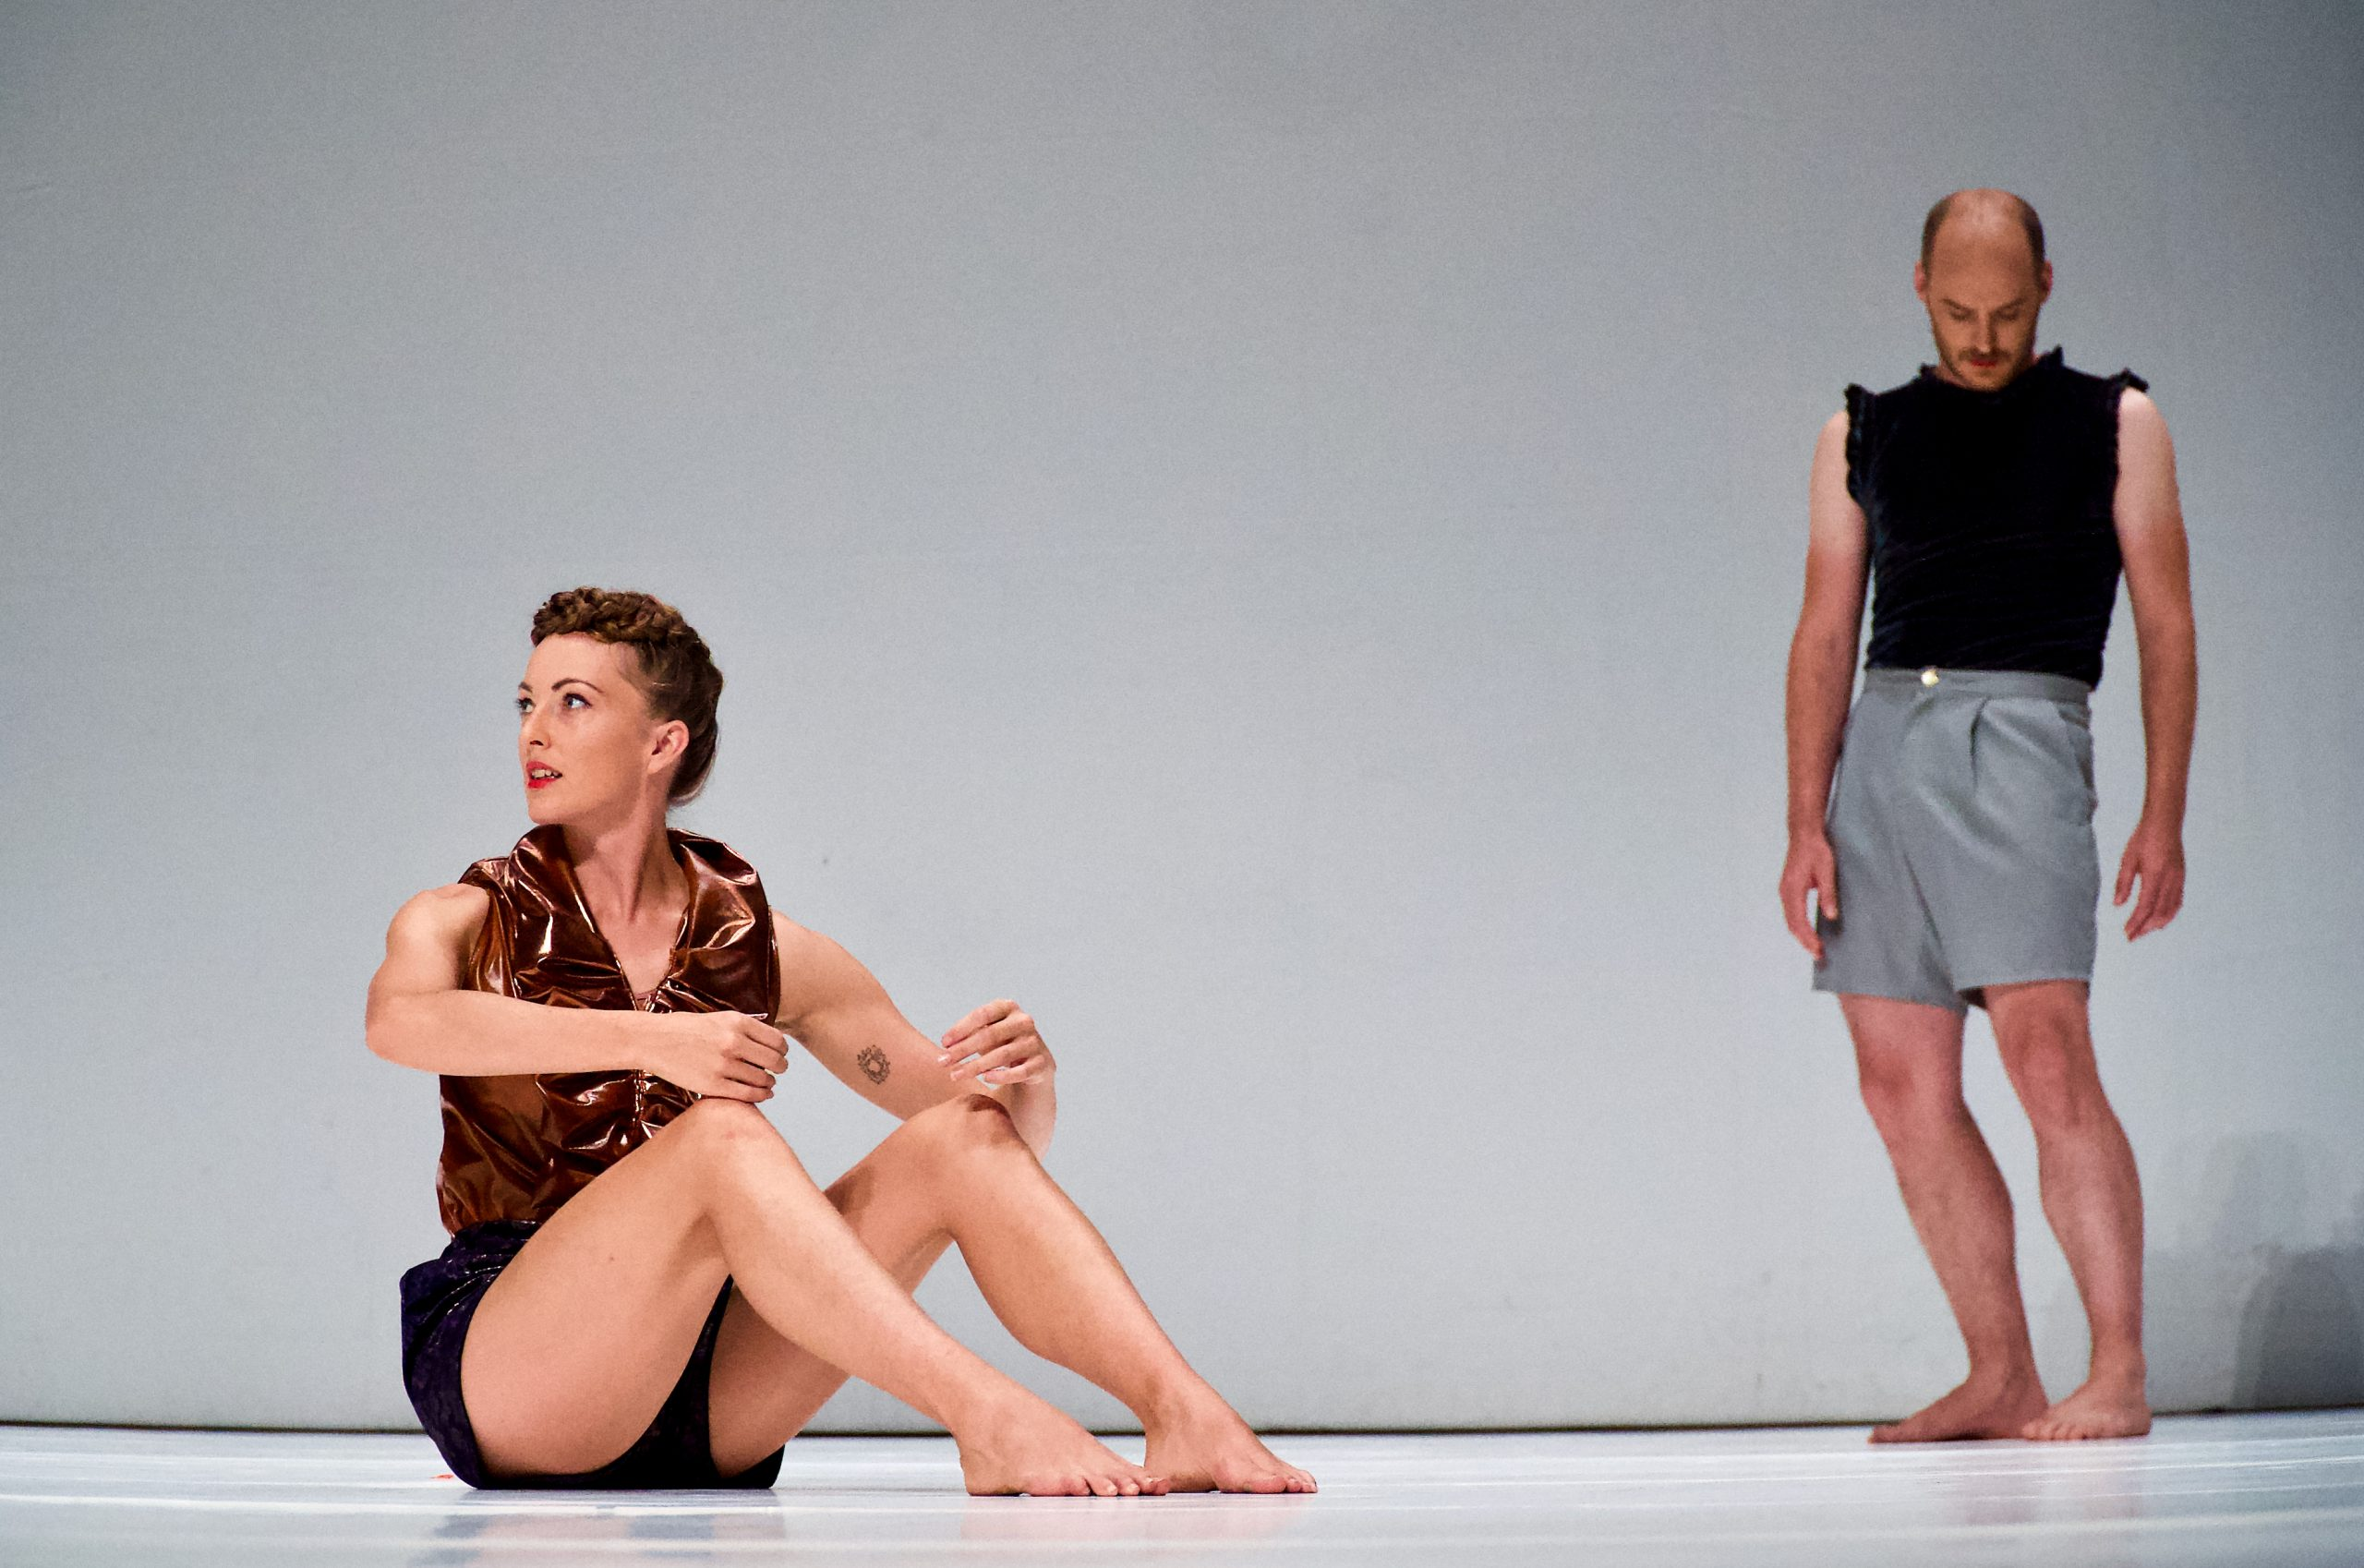 """Artist Jeanne Colin and Piet Defrancq during a preview performance of """"WEG"""" at HAU 1 in Berlin on Aug. 5, 2021."""